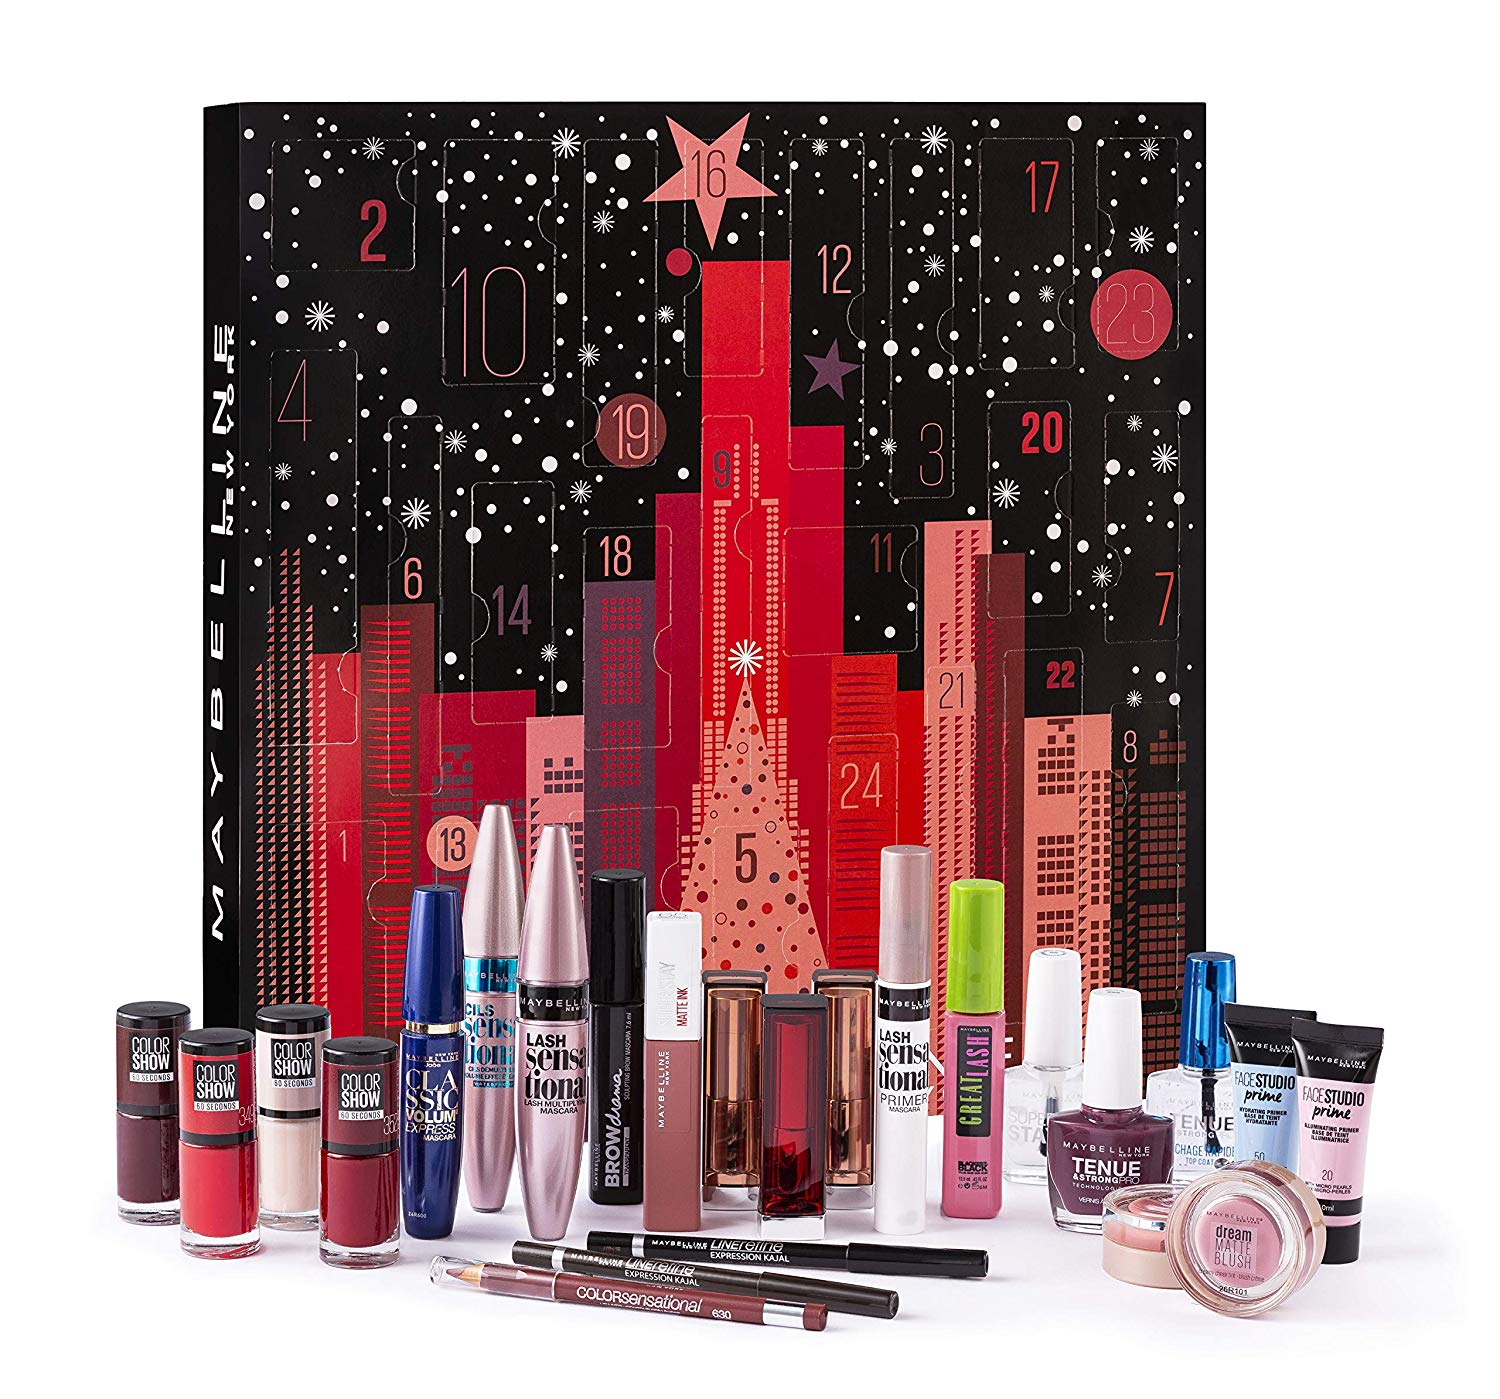 Maybelline New York Beauty-Adventskalender